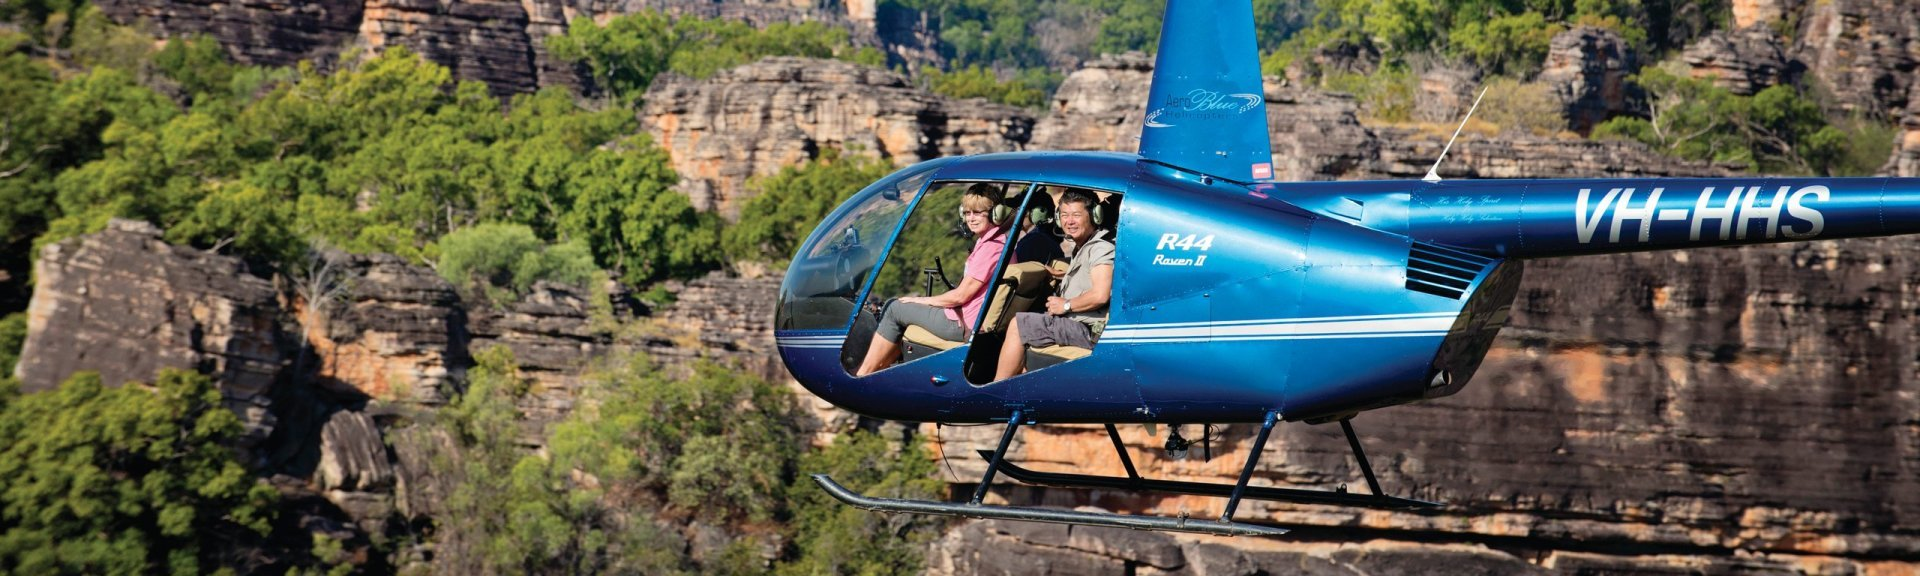 Passengers in a helicopter over Kakadu's escarpments. Photo by Tourism NT.